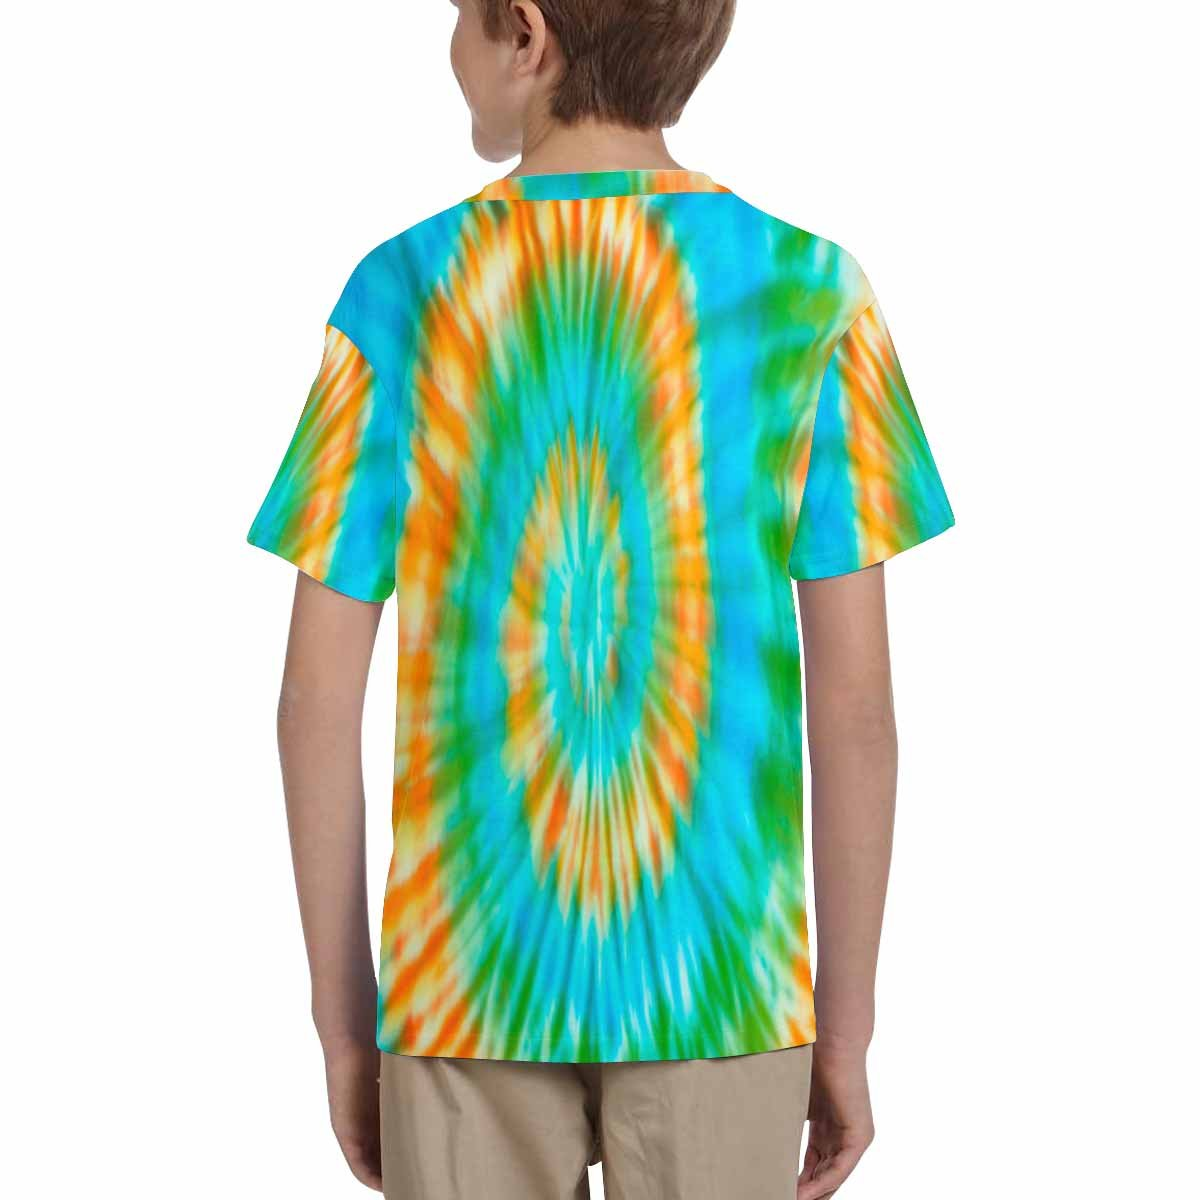 XS-XL INTERESTPRINT Kids T-Shirt Blur Fabric Tie Dye Bright Colors